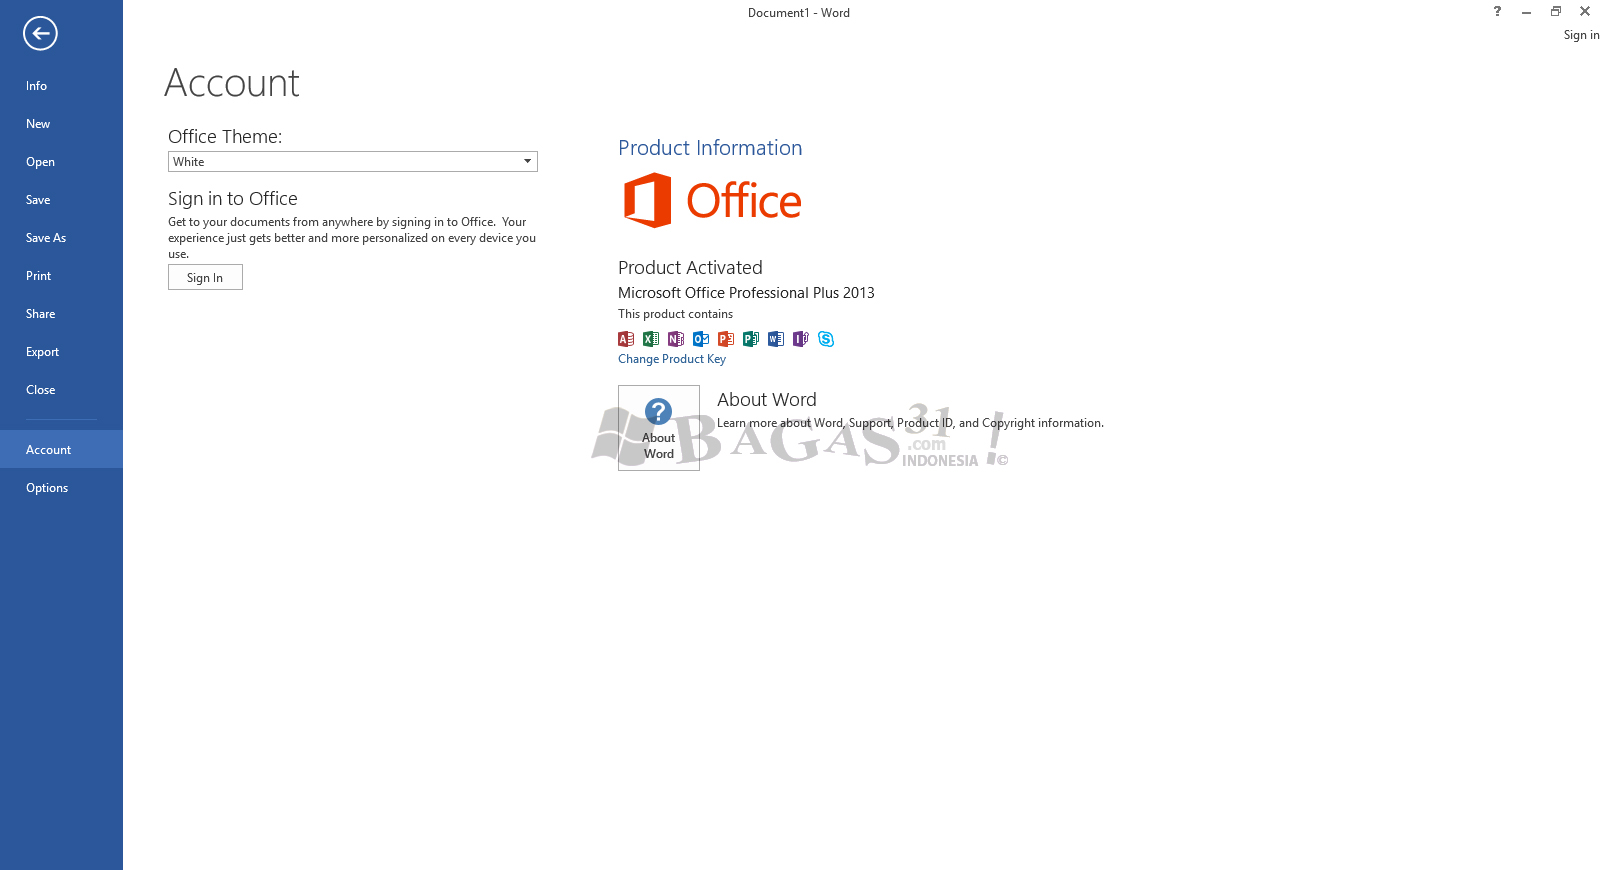 Microsoft Office 2013 Pro Plus Update Agustus 2019 Full Version